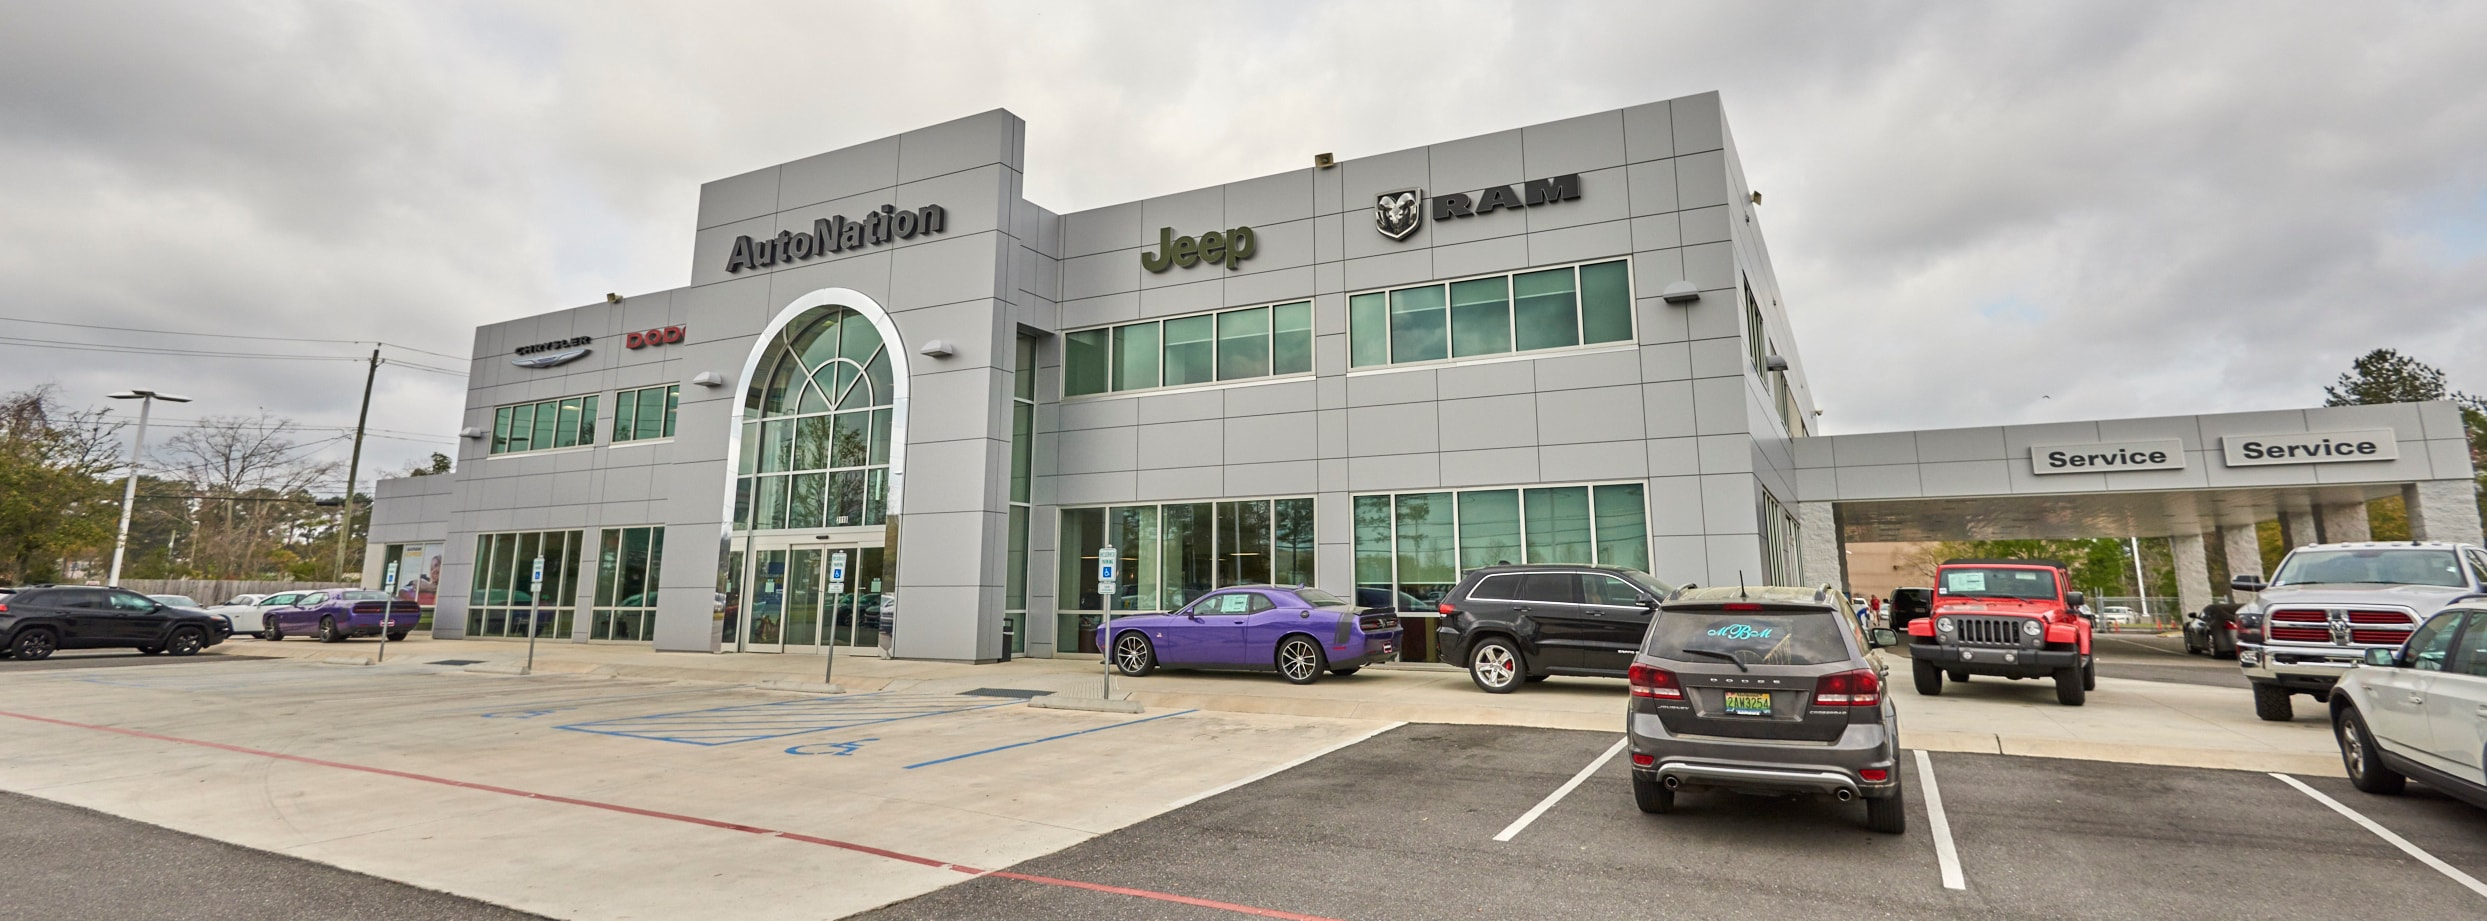 About AutoNation Chrysler Dodge Jeep RAM Mobile